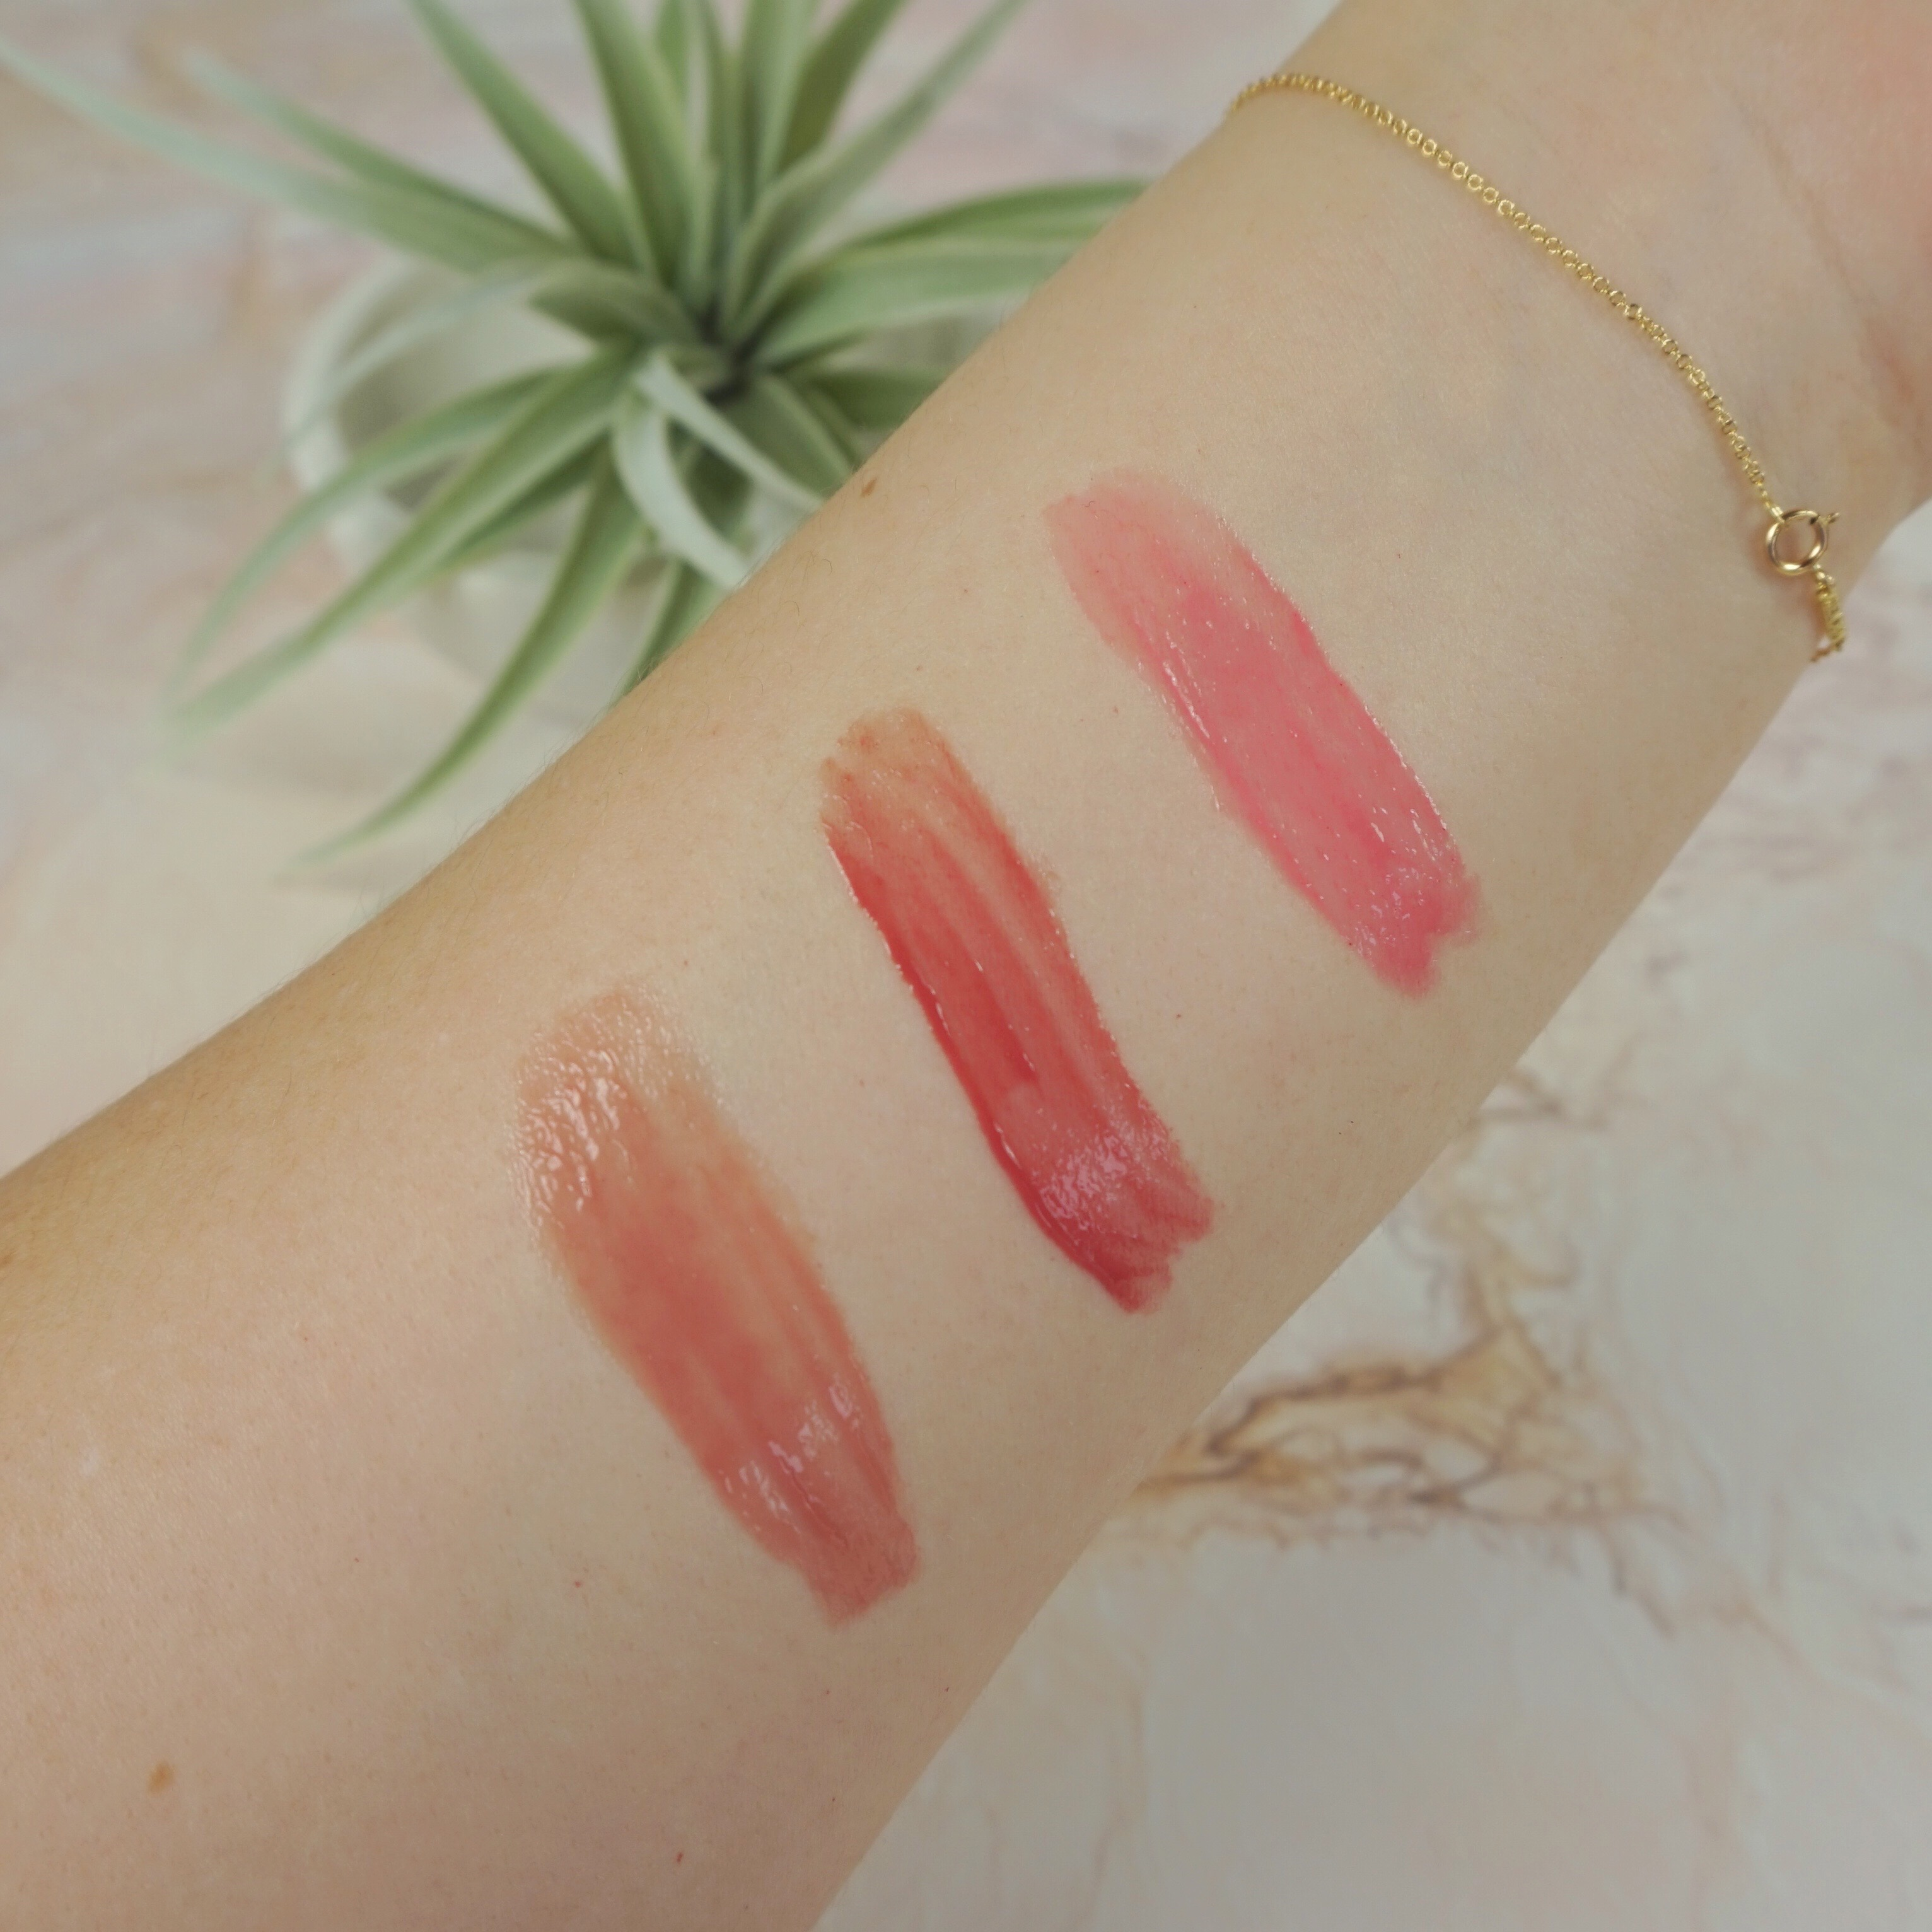 crunchi lipgloss swatches